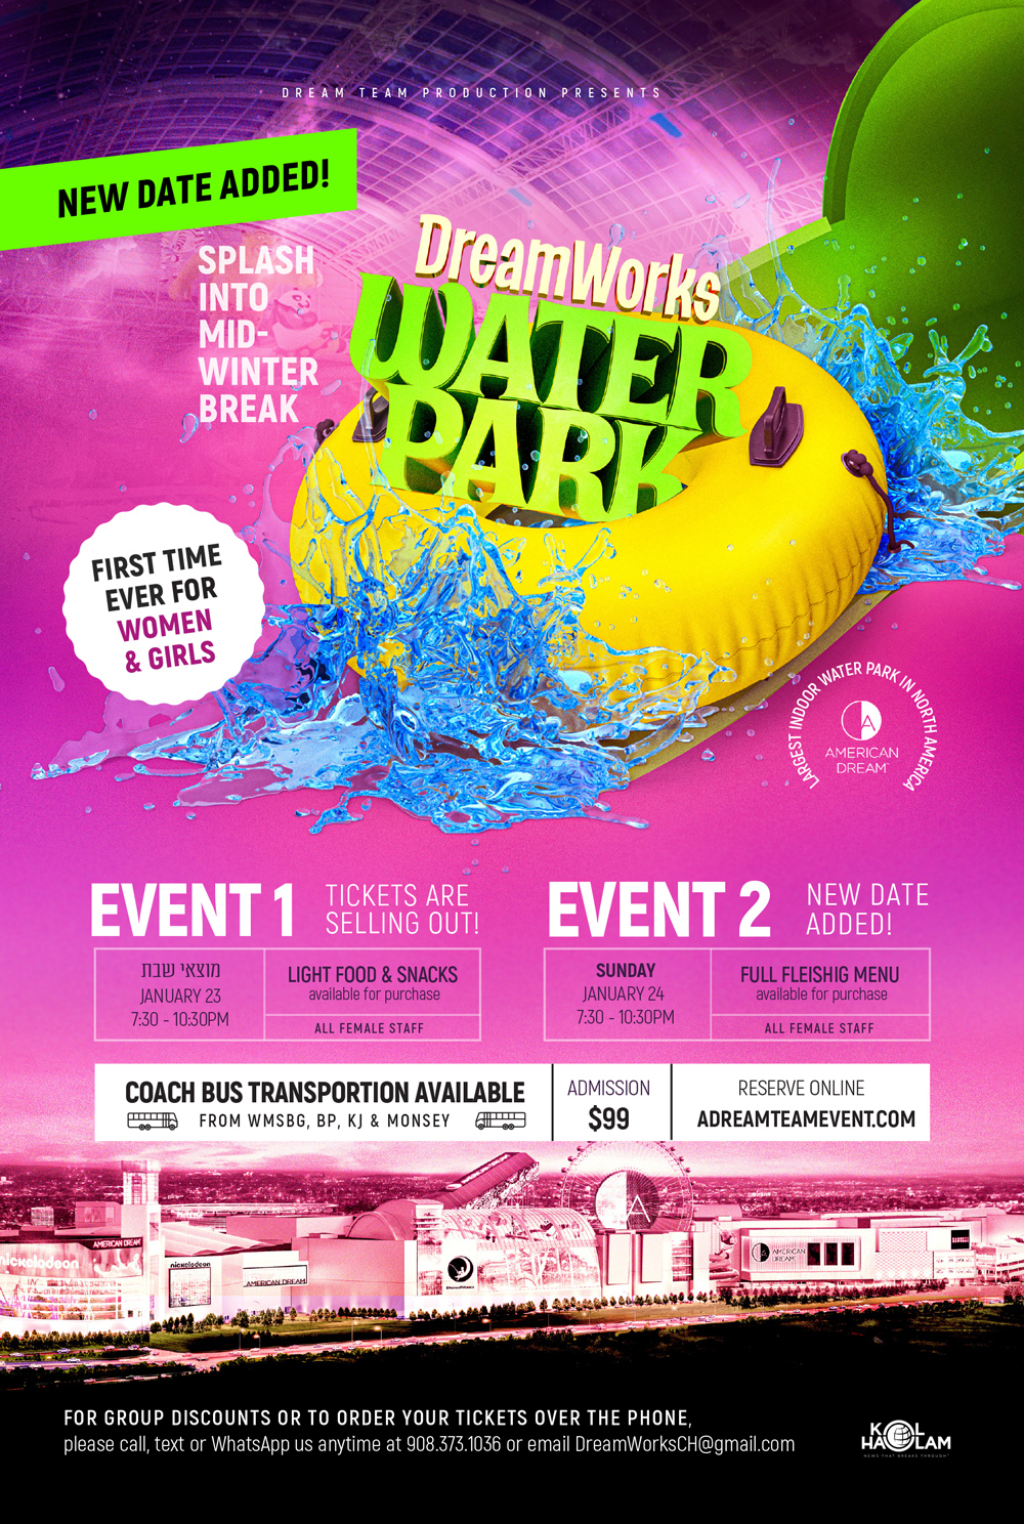 HURRY! Motzei Shabbos Event Nearly Sold Out at DreamWorks Water Park for Women & Girls!